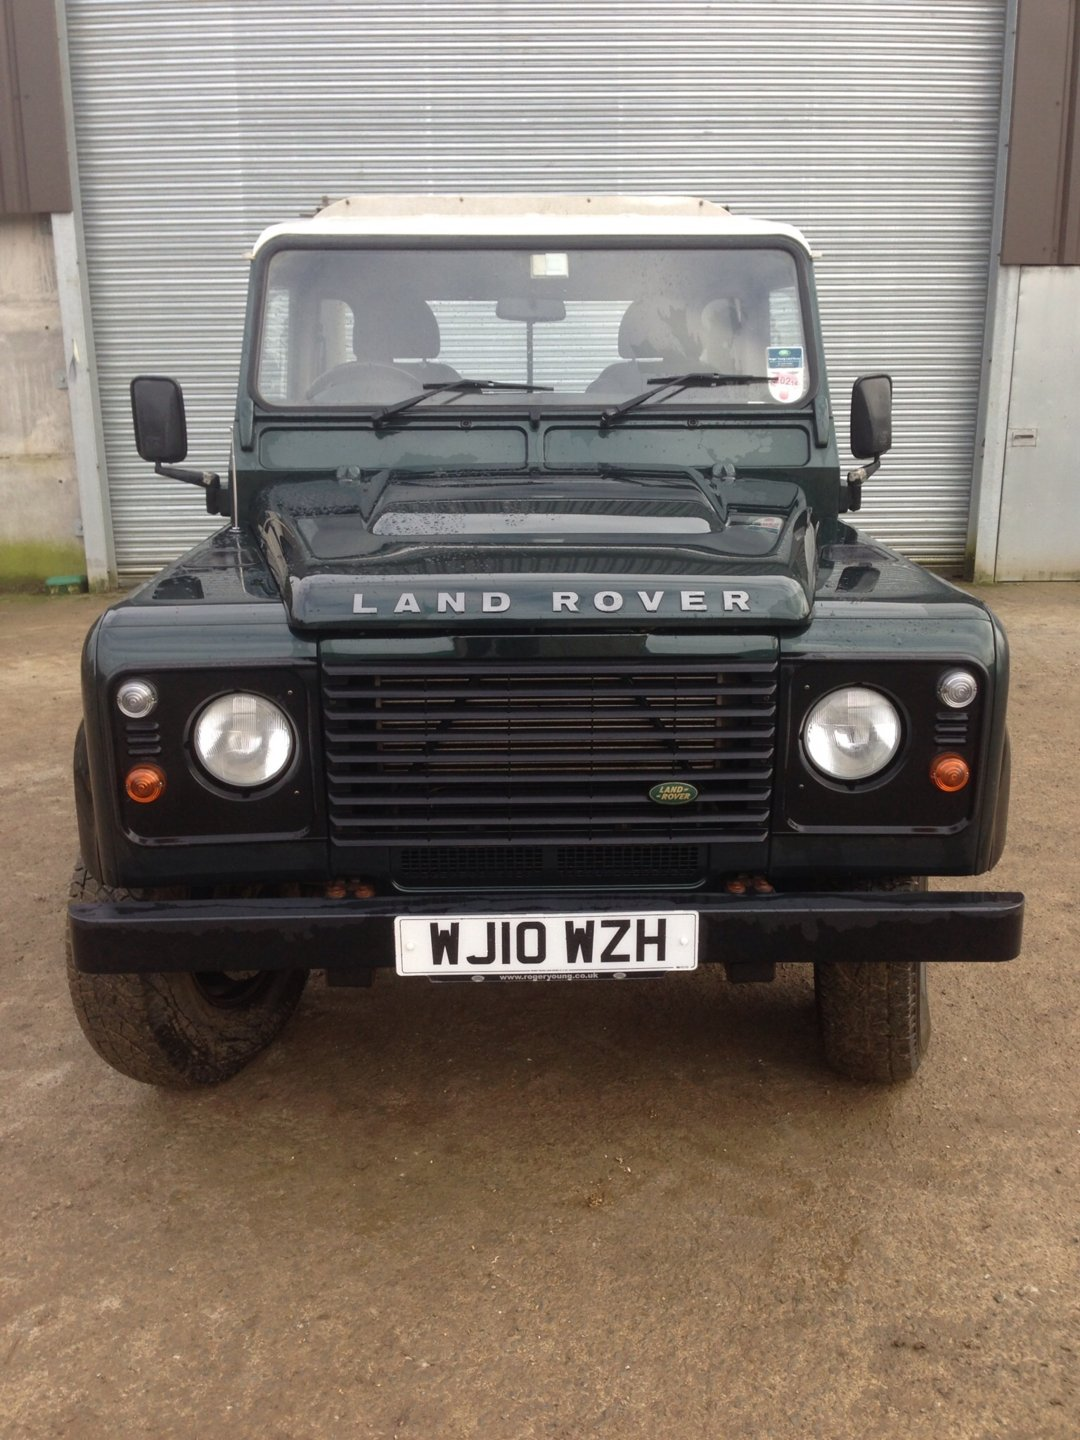 2010 land rover defender 90 pick up the farming forum. Black Bedroom Furniture Sets. Home Design Ideas